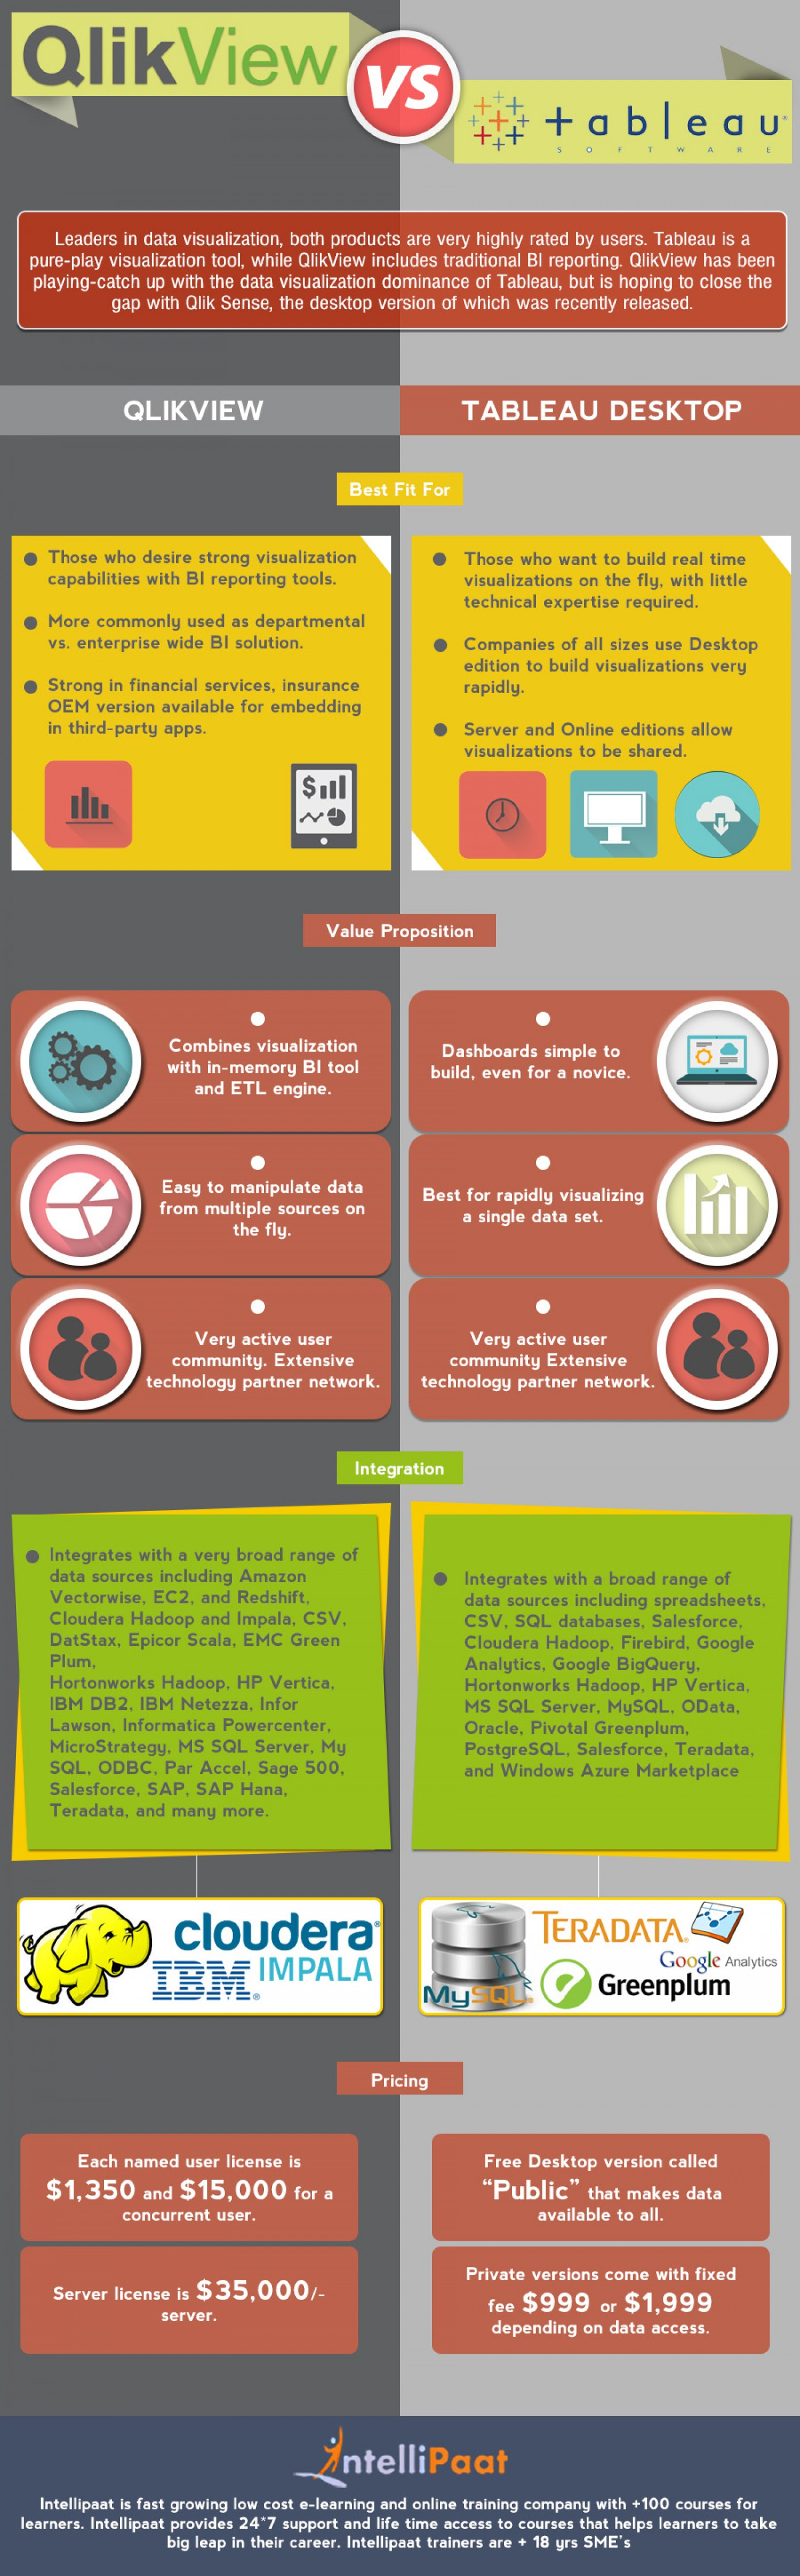 Qlikview Vs Tableau Infographic | RPA | Data visualization, Business